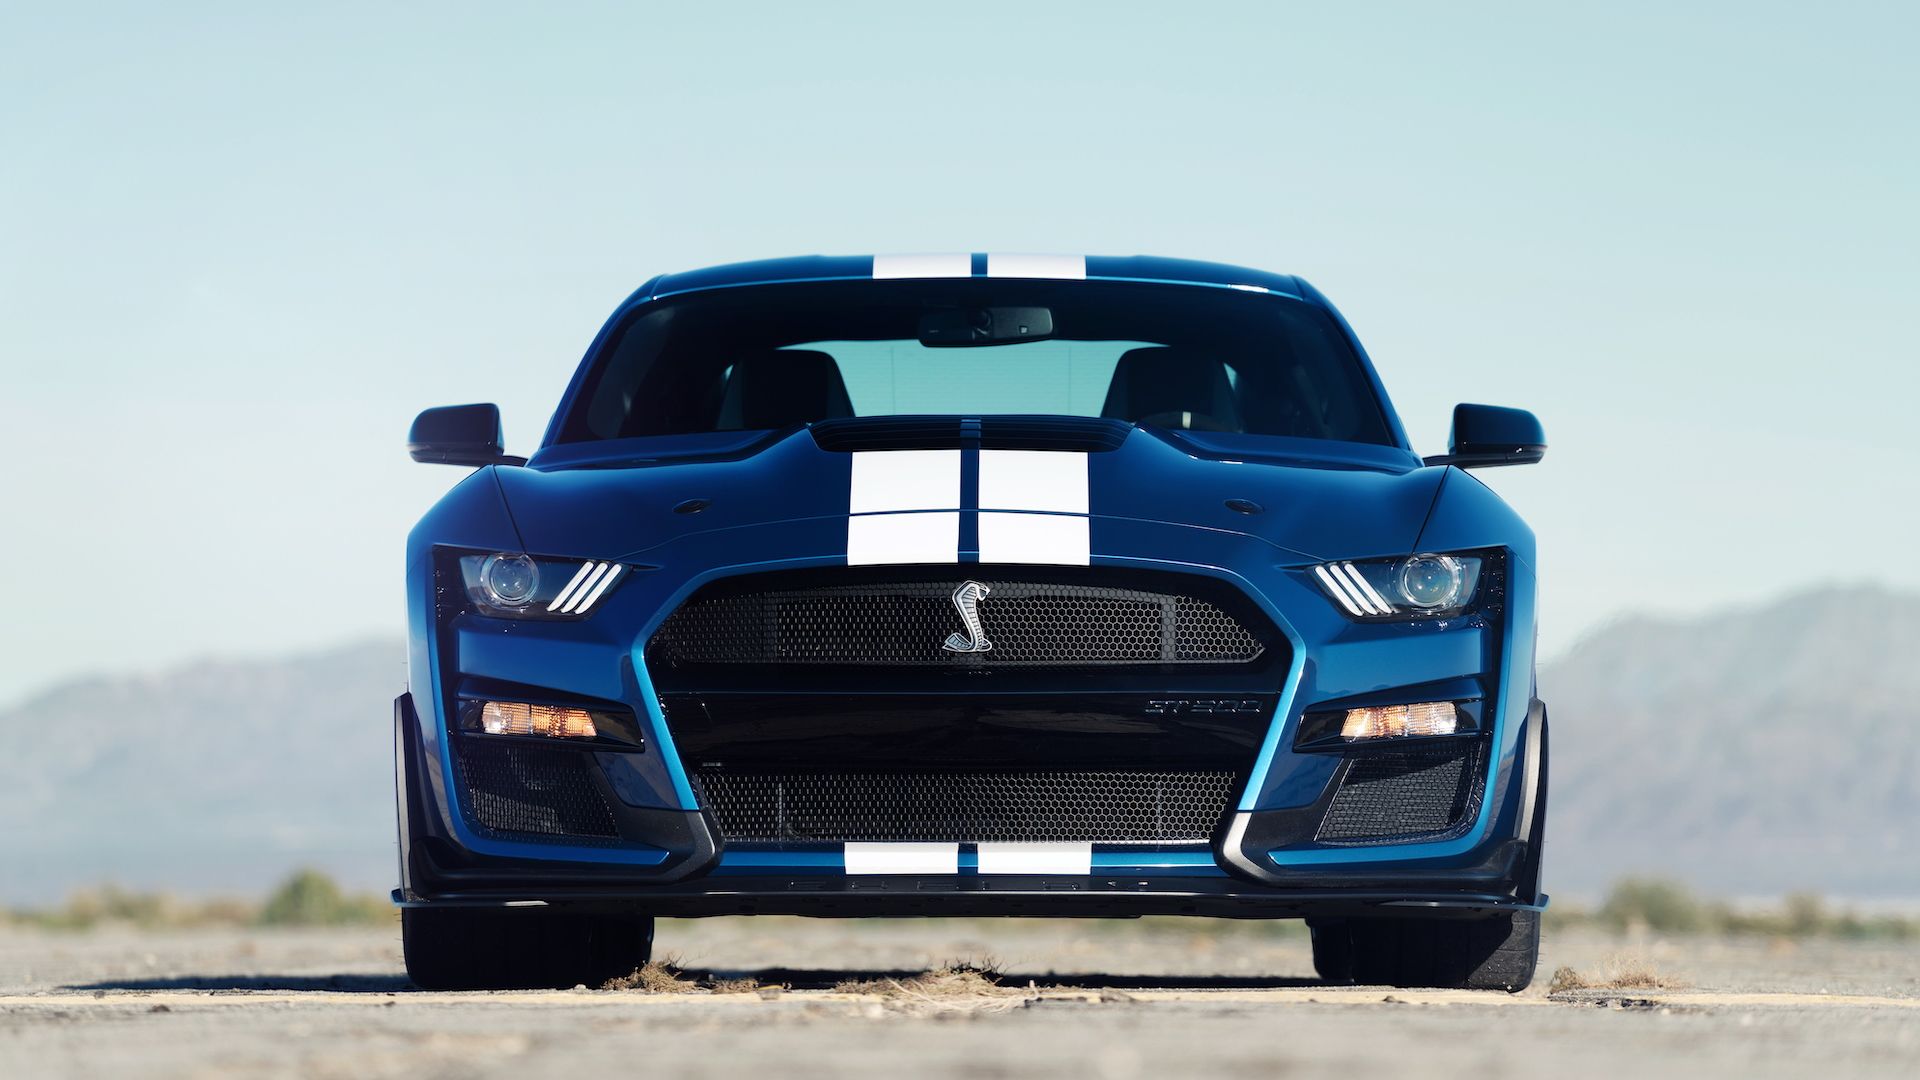 Ford Mustang Shelby Gt500 Motor Authority Best Car To Buy 2021 Nominee